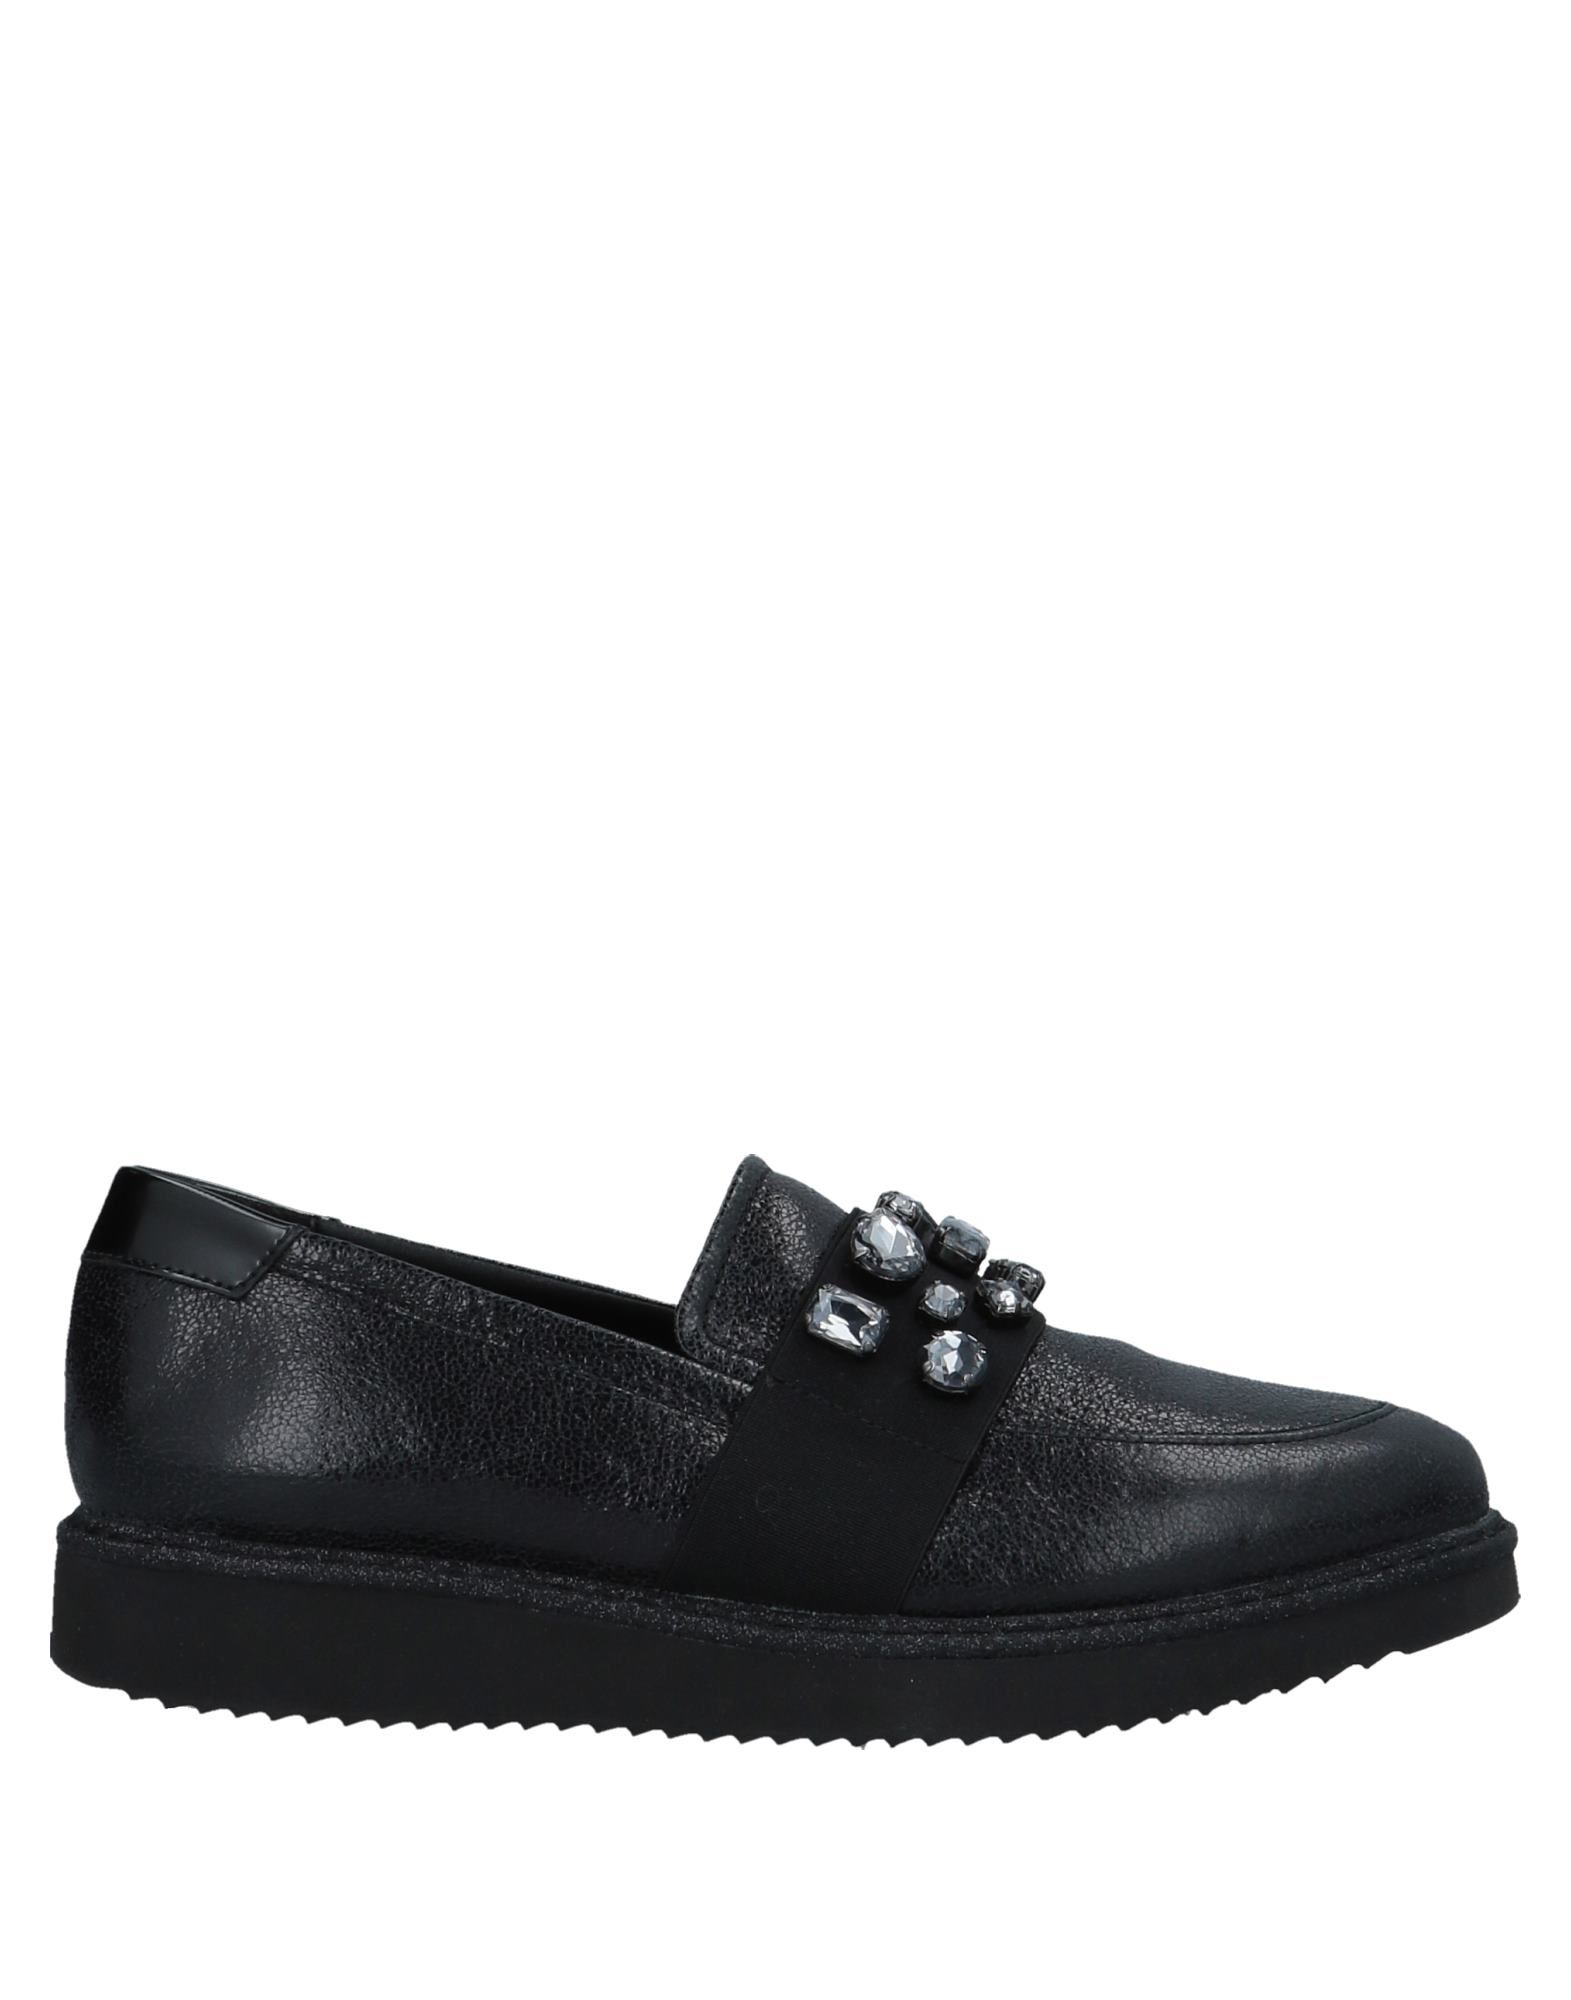 Geox Loafers  - Women Geox Loafers online on  Loafers Australia - 11540485CP 4ecb2d